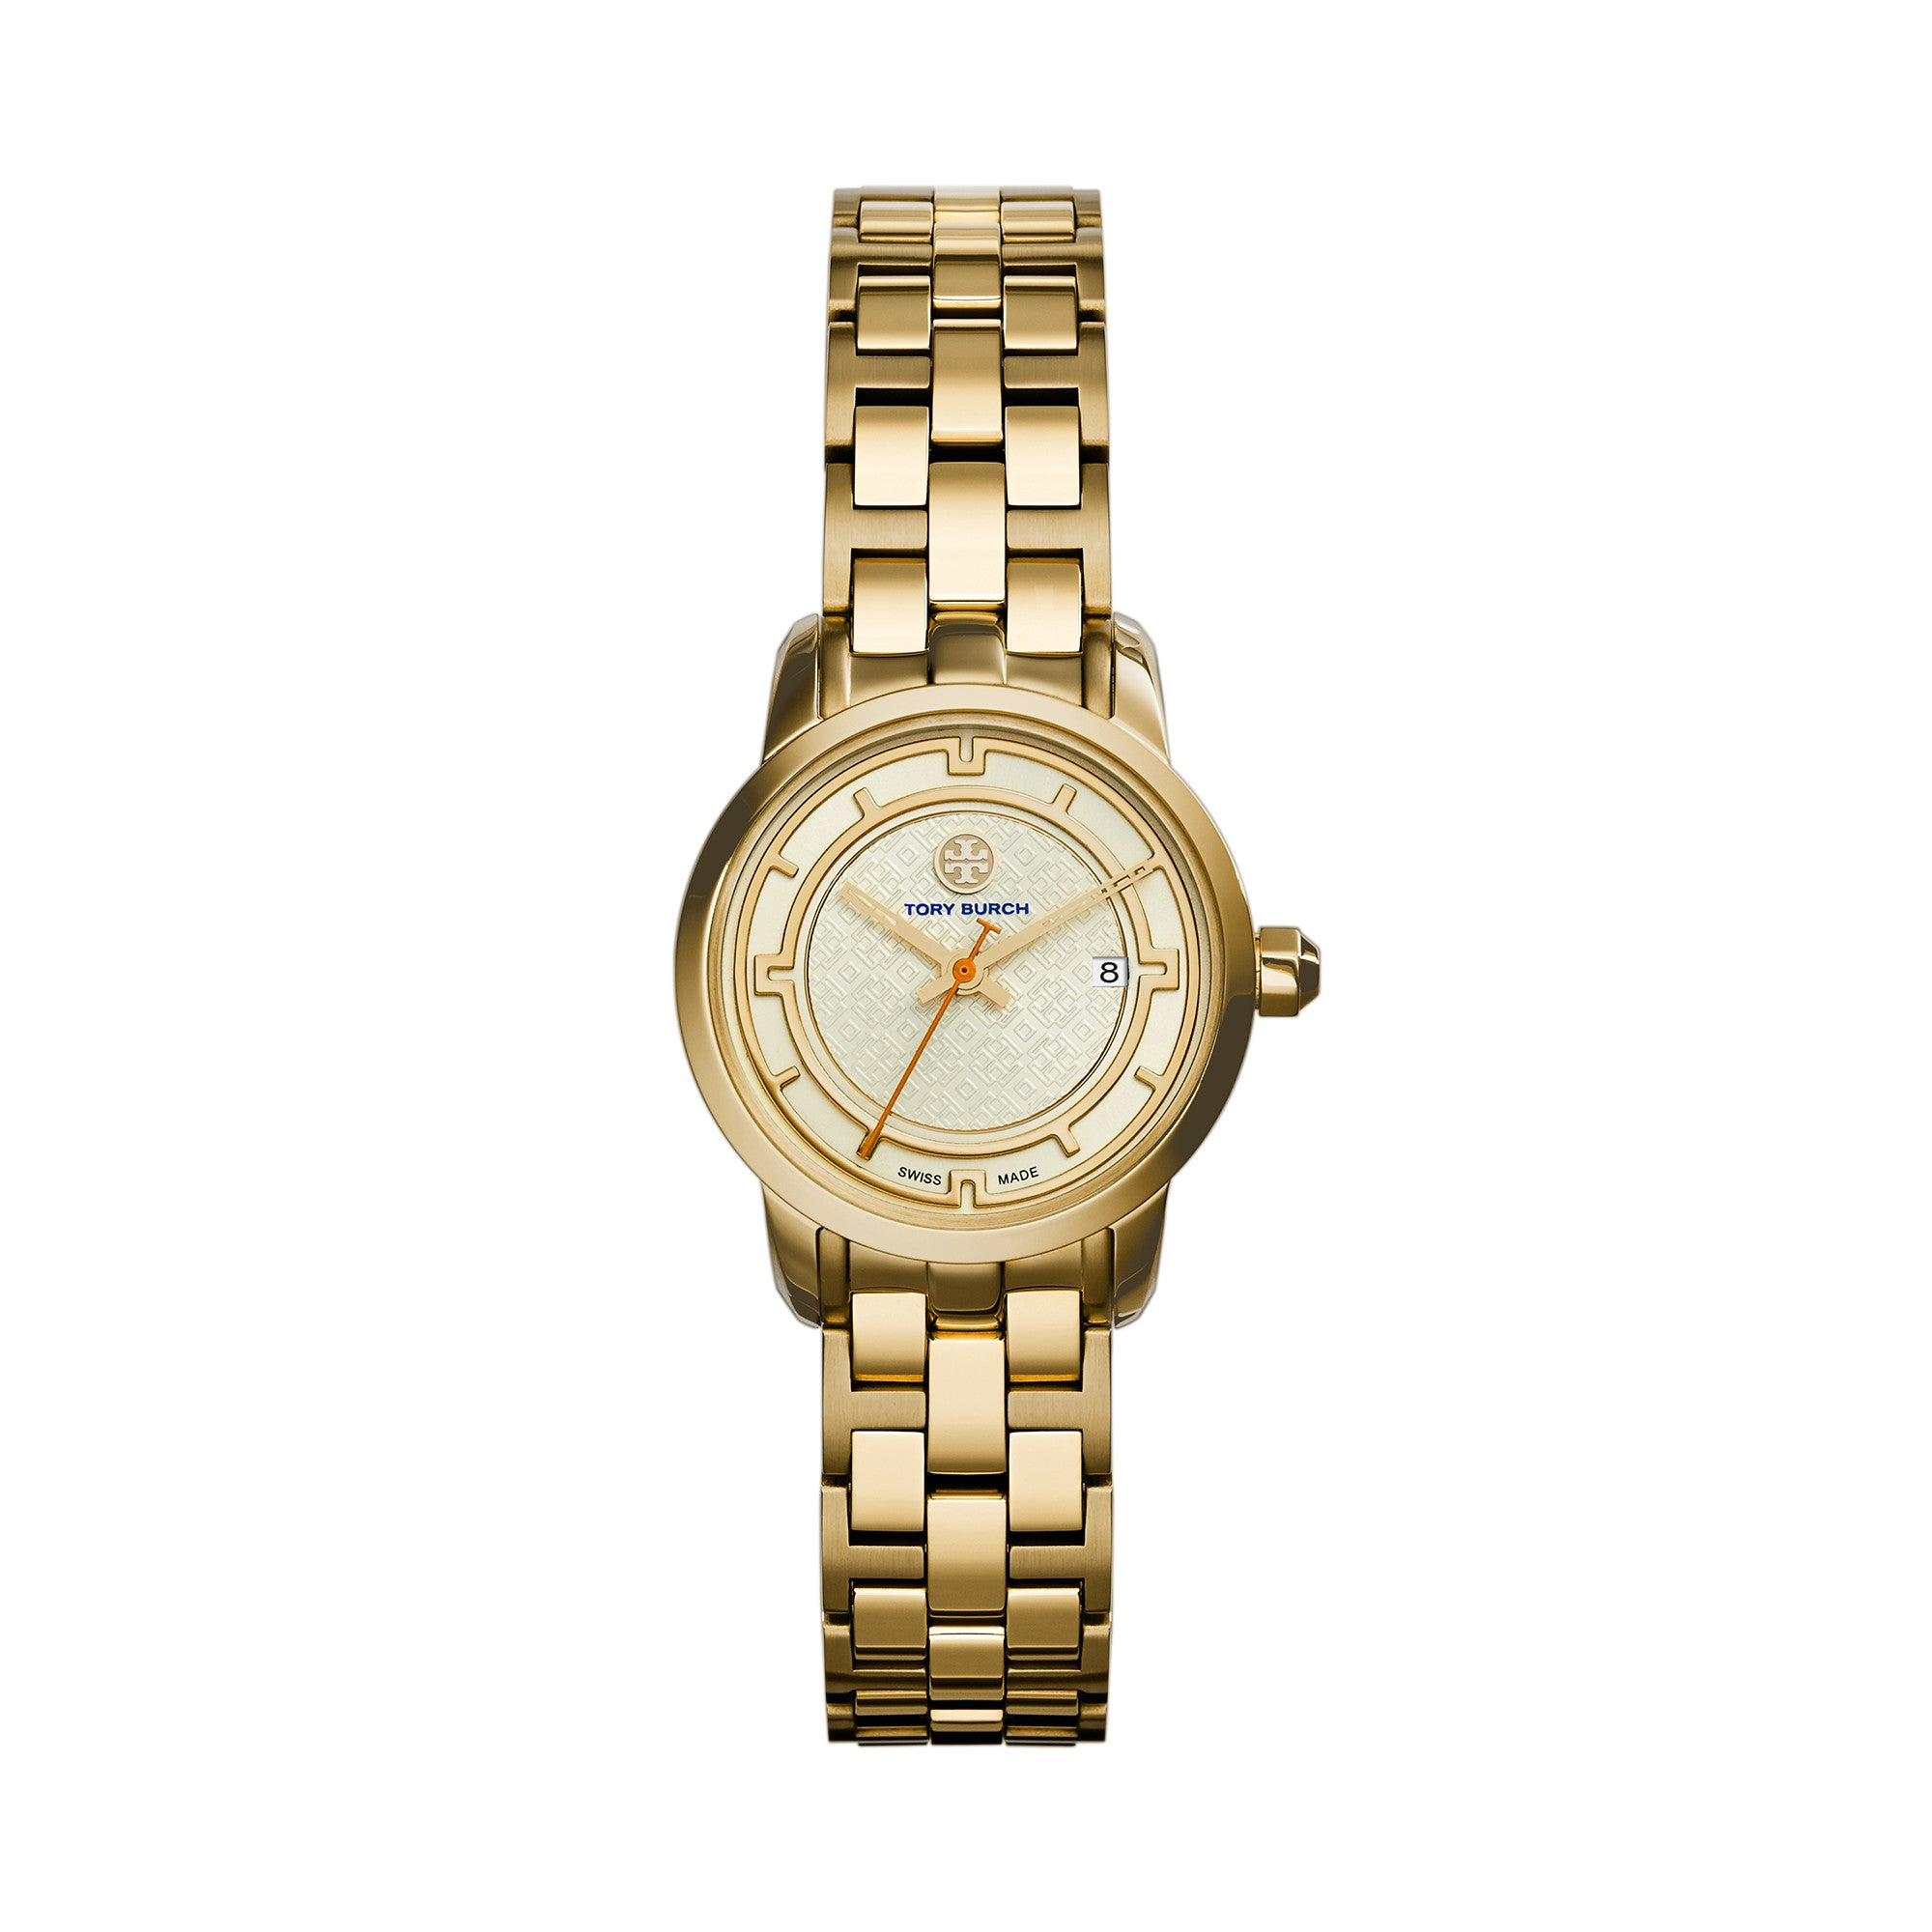 TORY WATCH, GOLD-TONE/IVORY, 28 MM